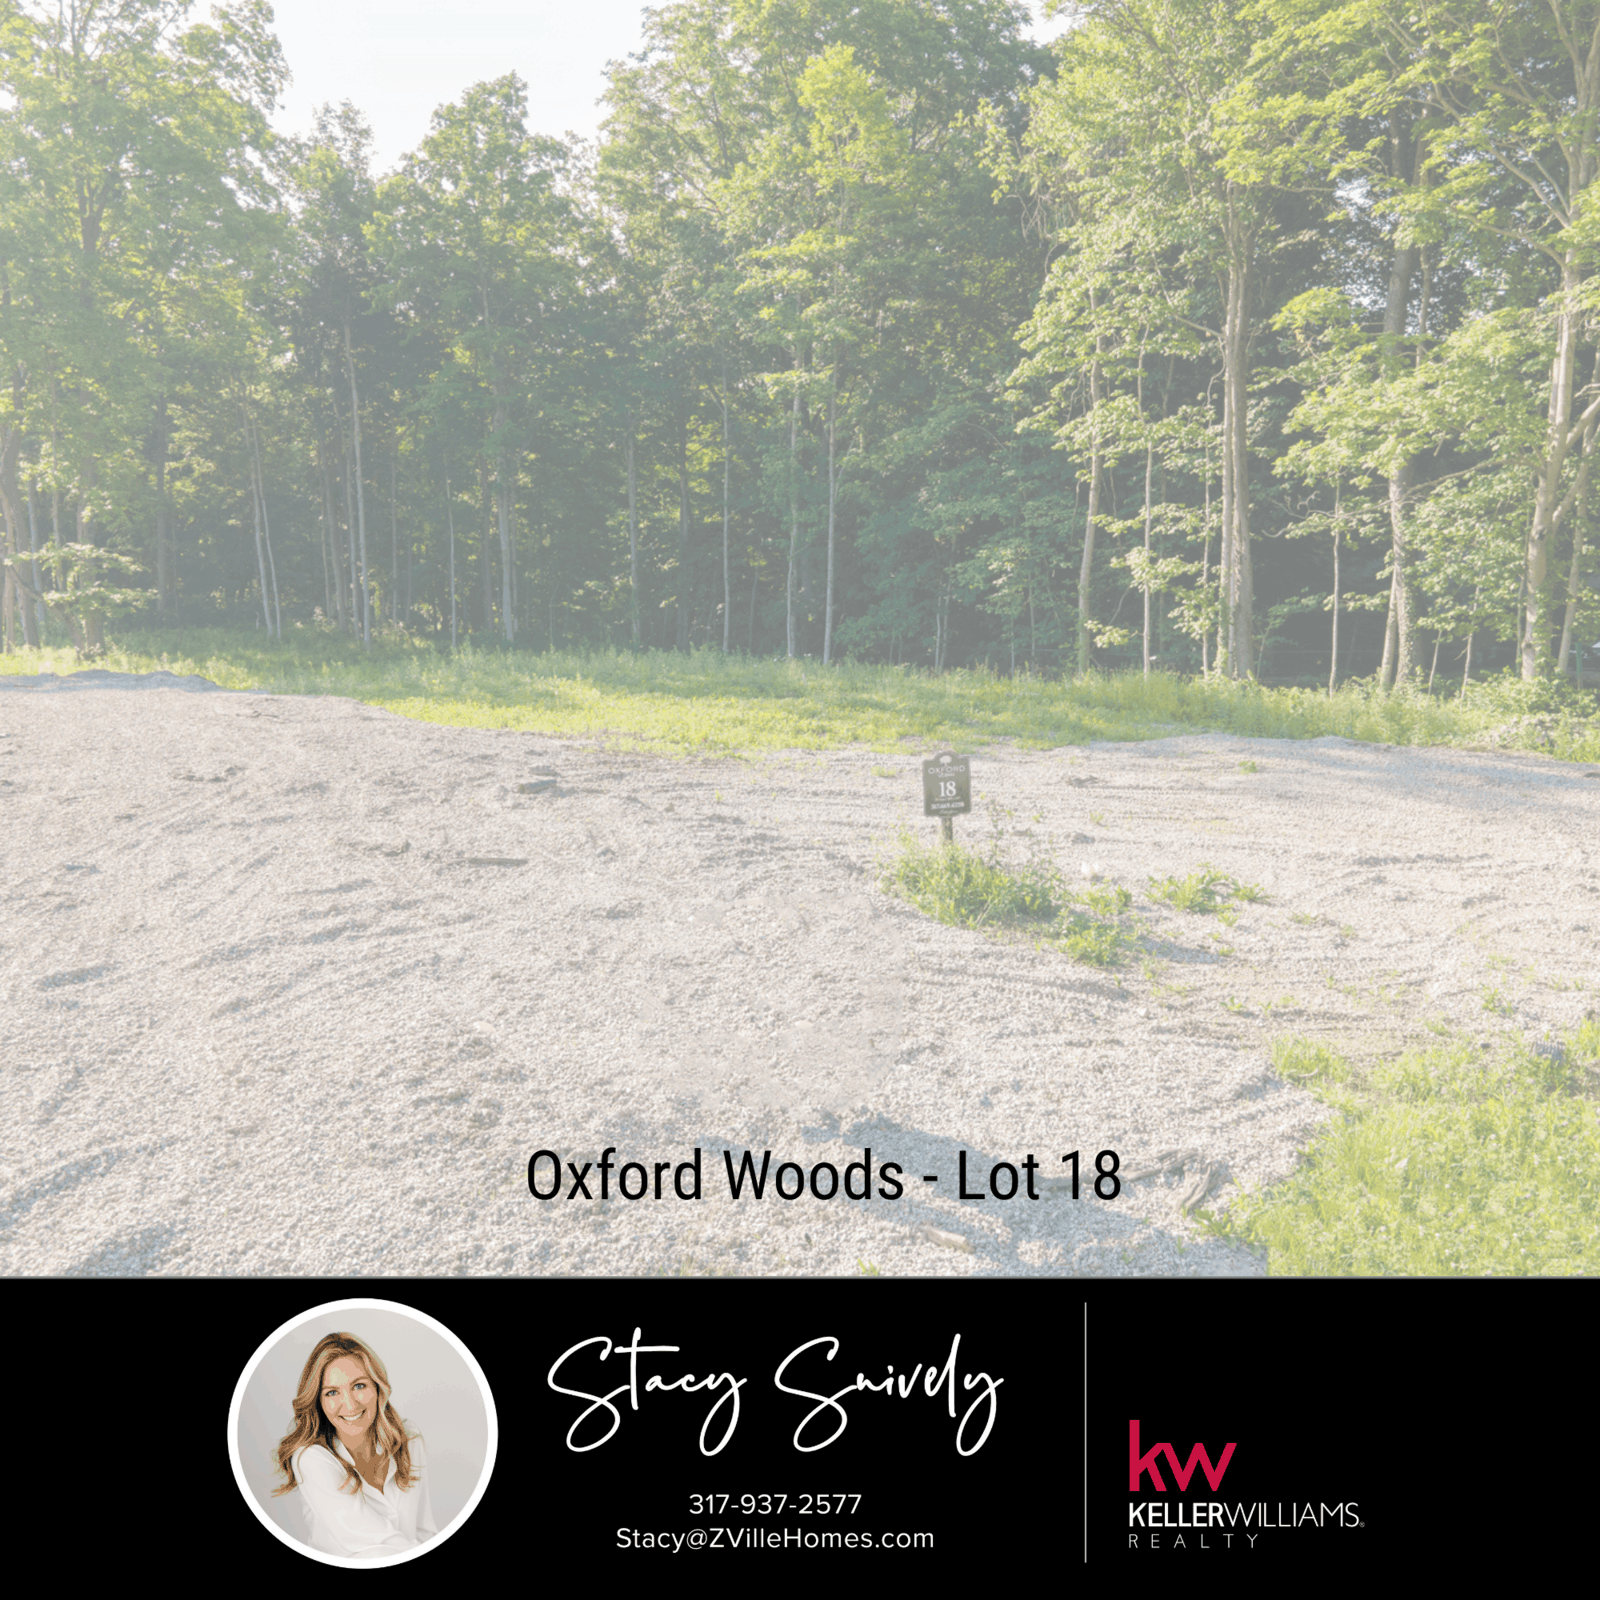 Oxford Woods - Lot 18 Just Listed